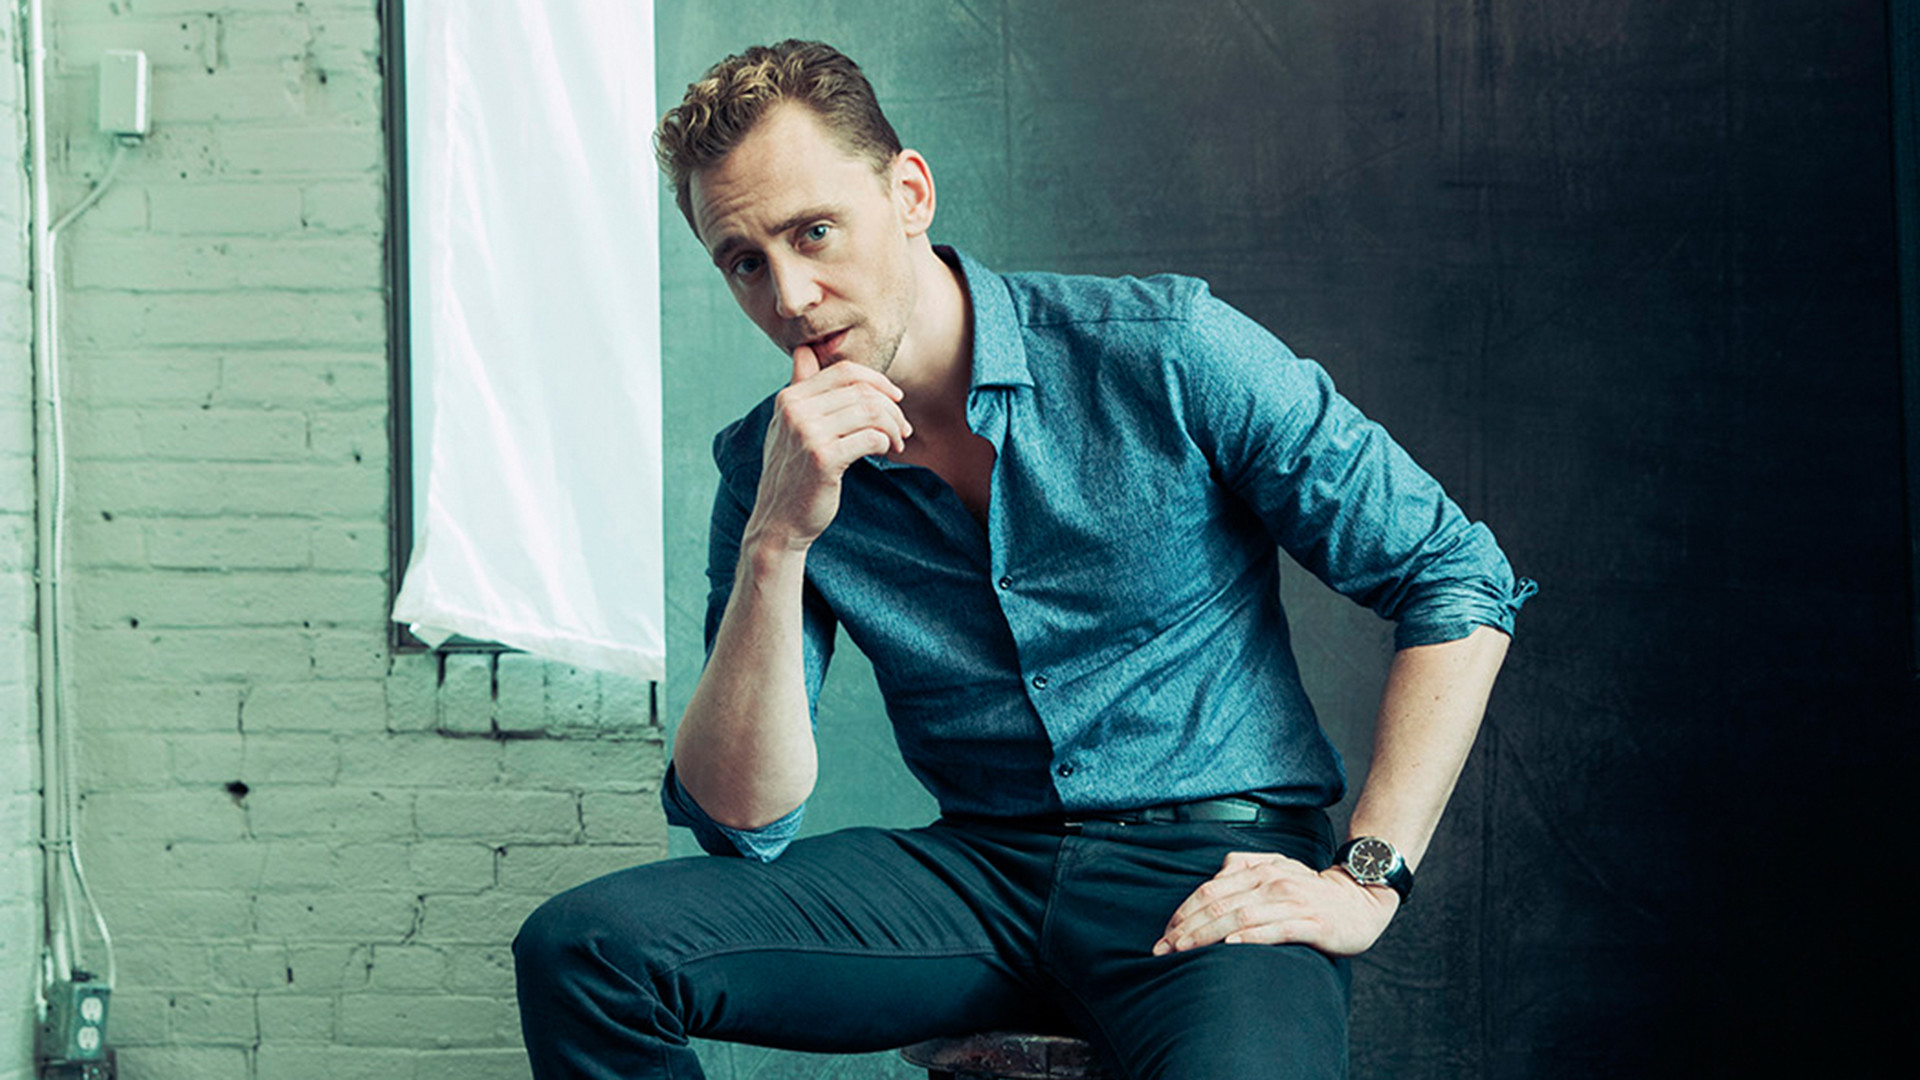 Tom Hiddleston Wallpaper – HD – HdCoolWallpapers.Com